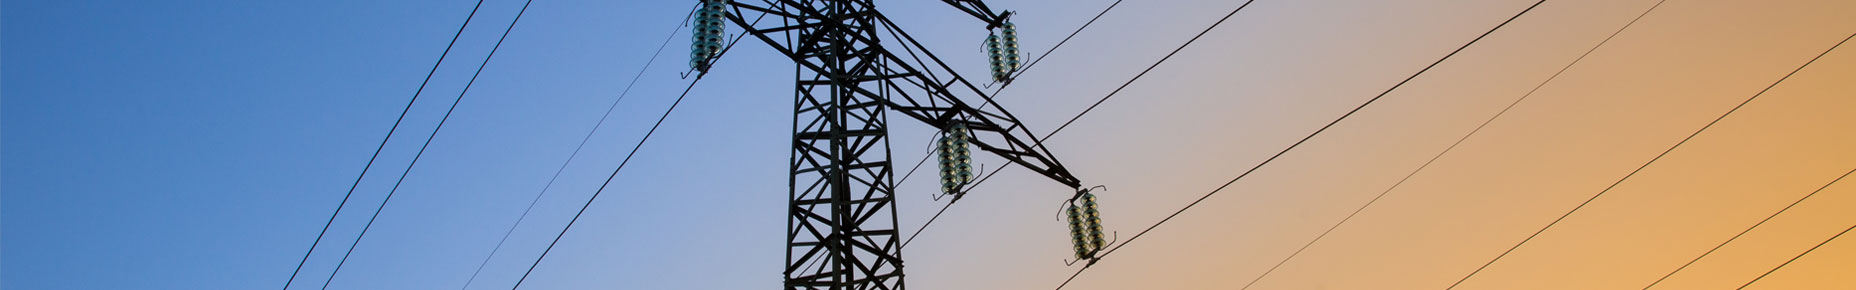 power-lines-2